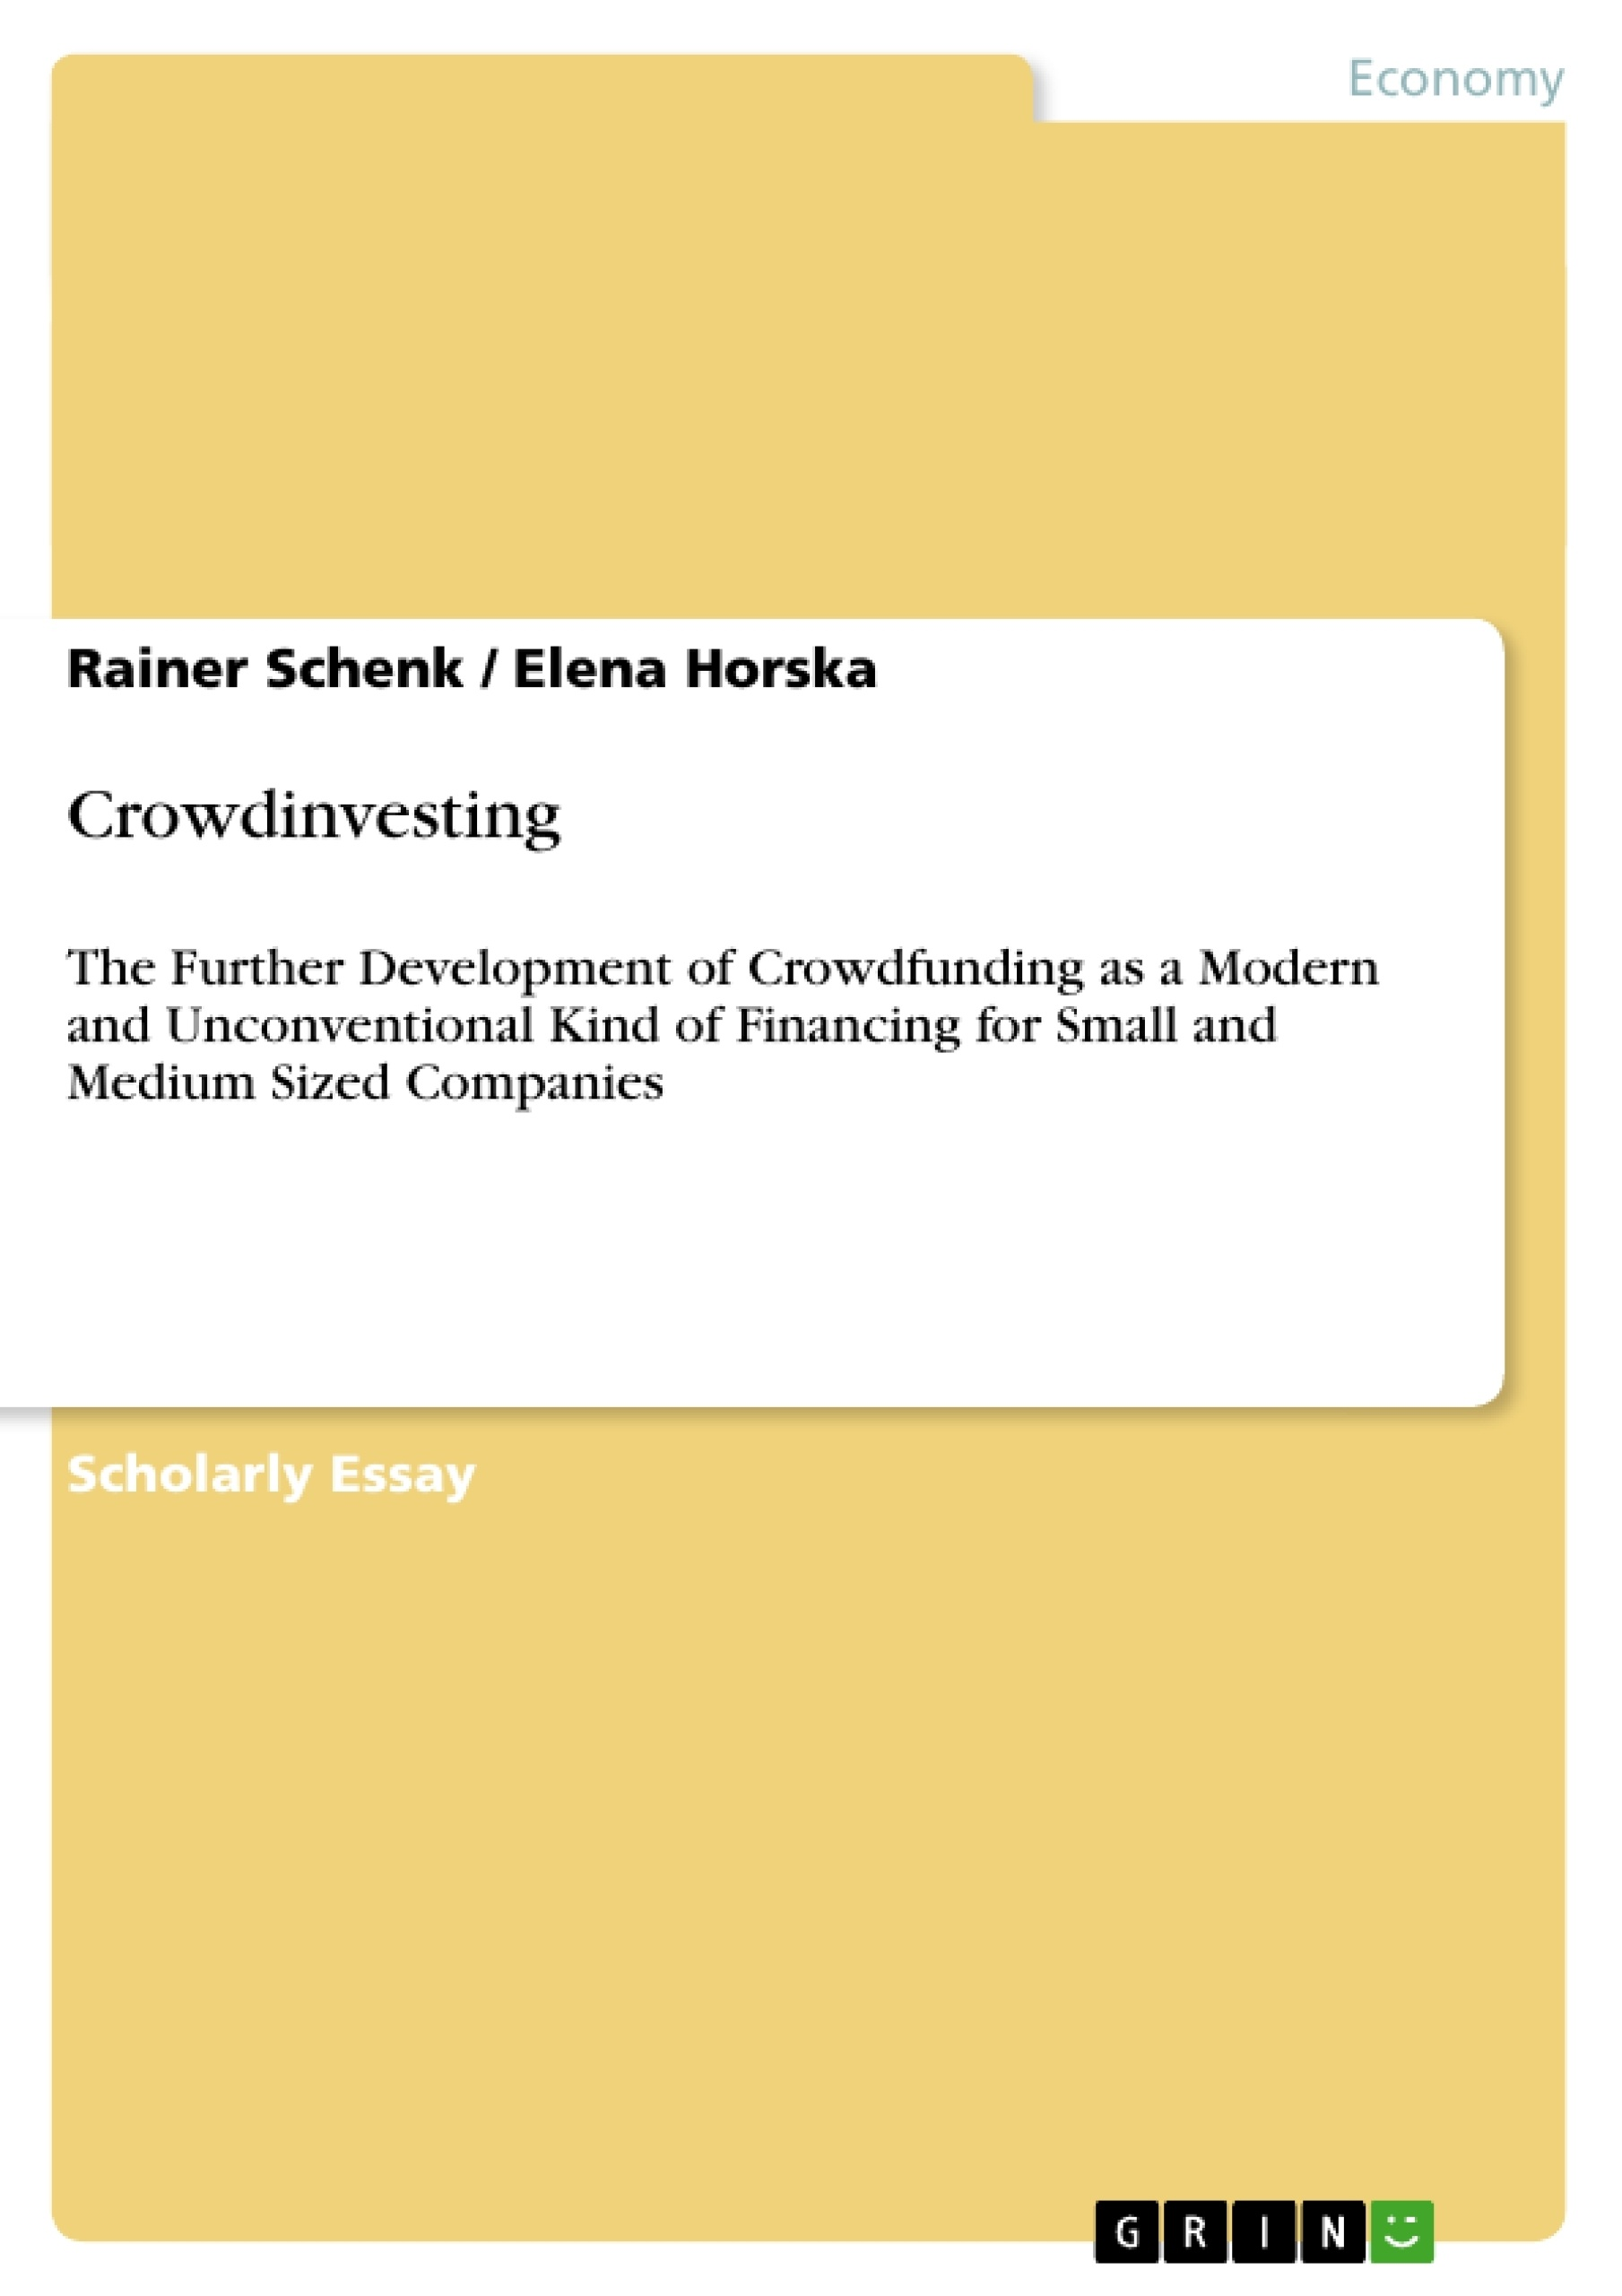 Title: Crowdinvesting